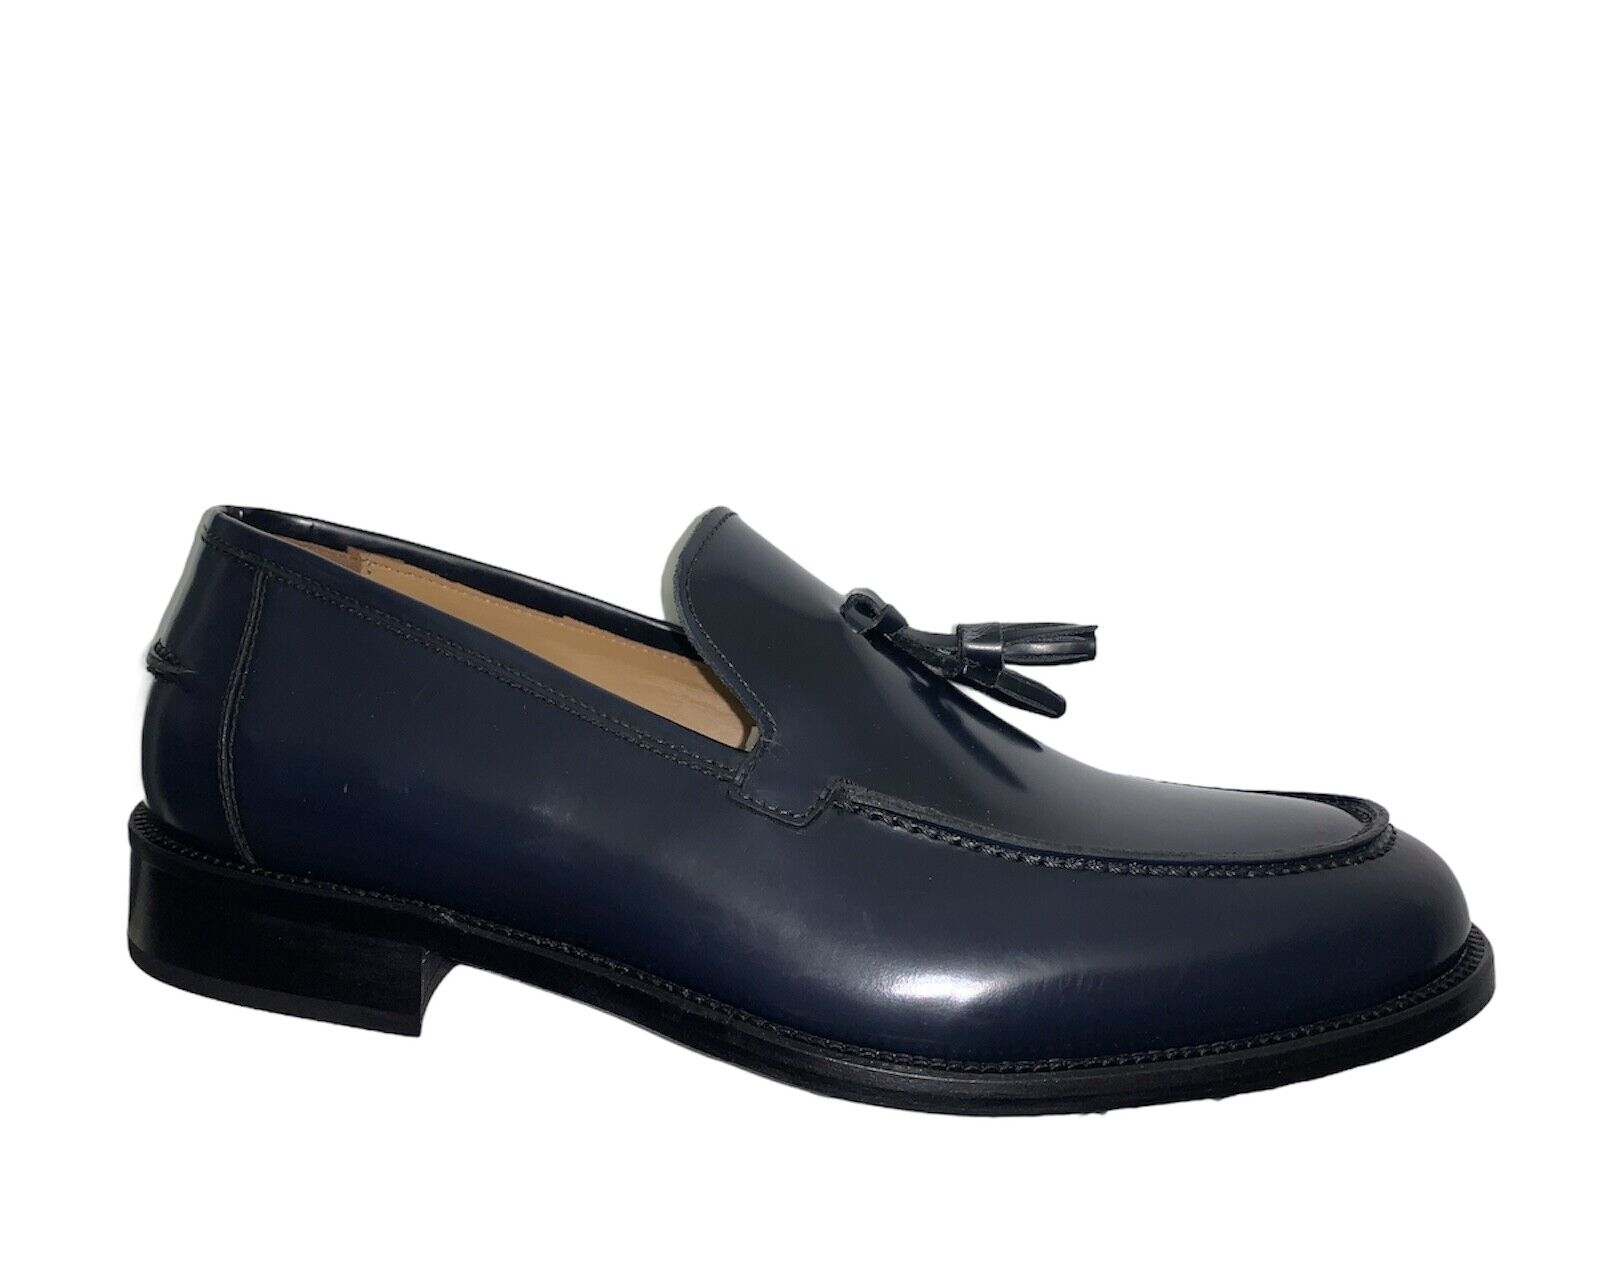 ROGAL'S Moccasin Elegant Man cerimonia Leather Blue Leather Pon - Made IN Italy